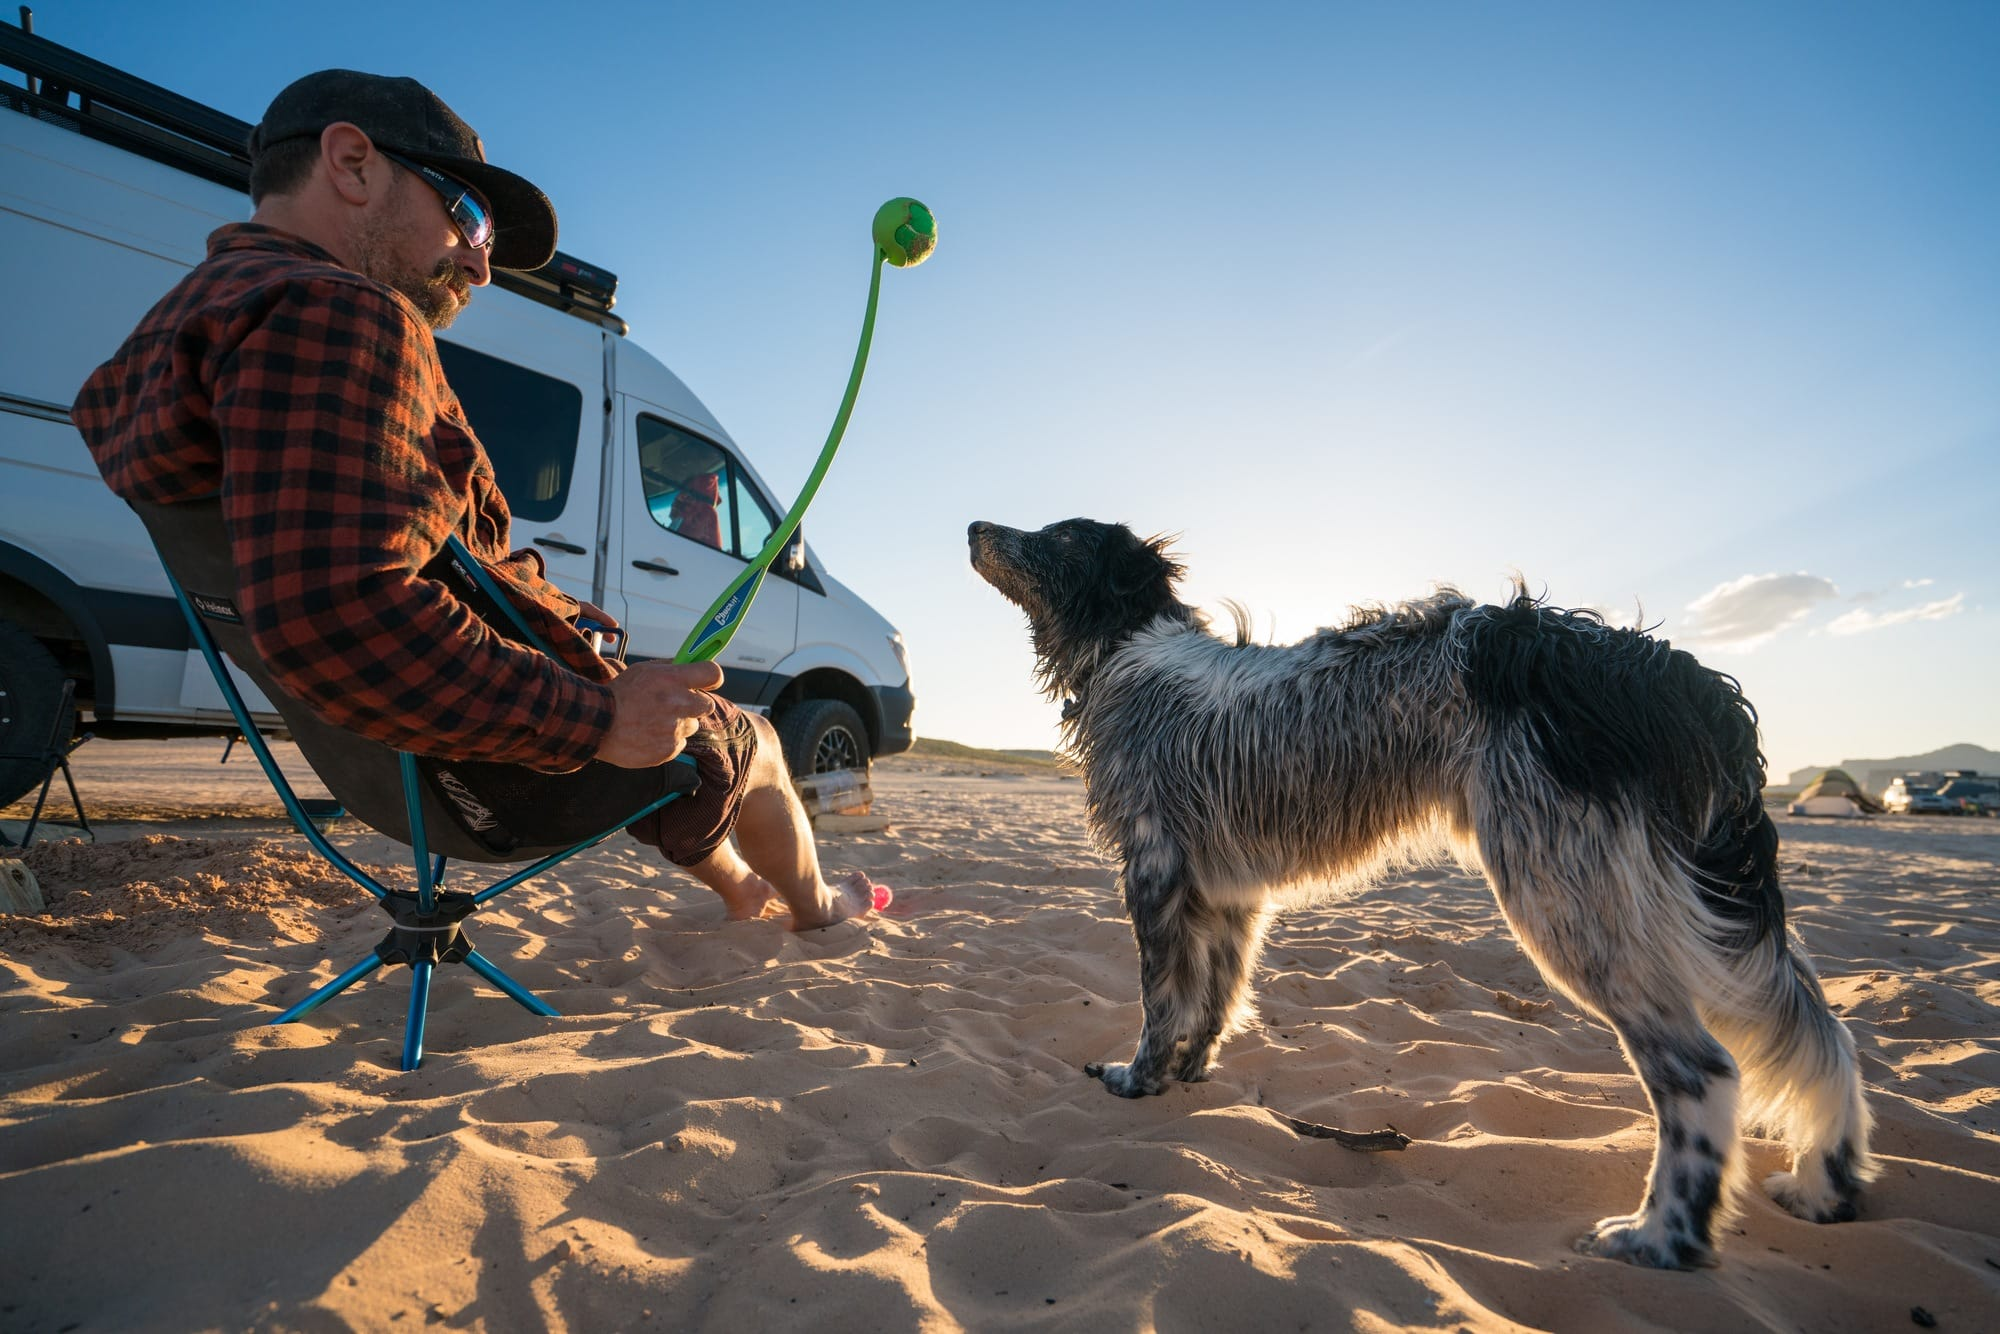 Want to road trip with your dog? Here's 15 practical tips that cover everything from training, keeping your dog comfortable, and more.